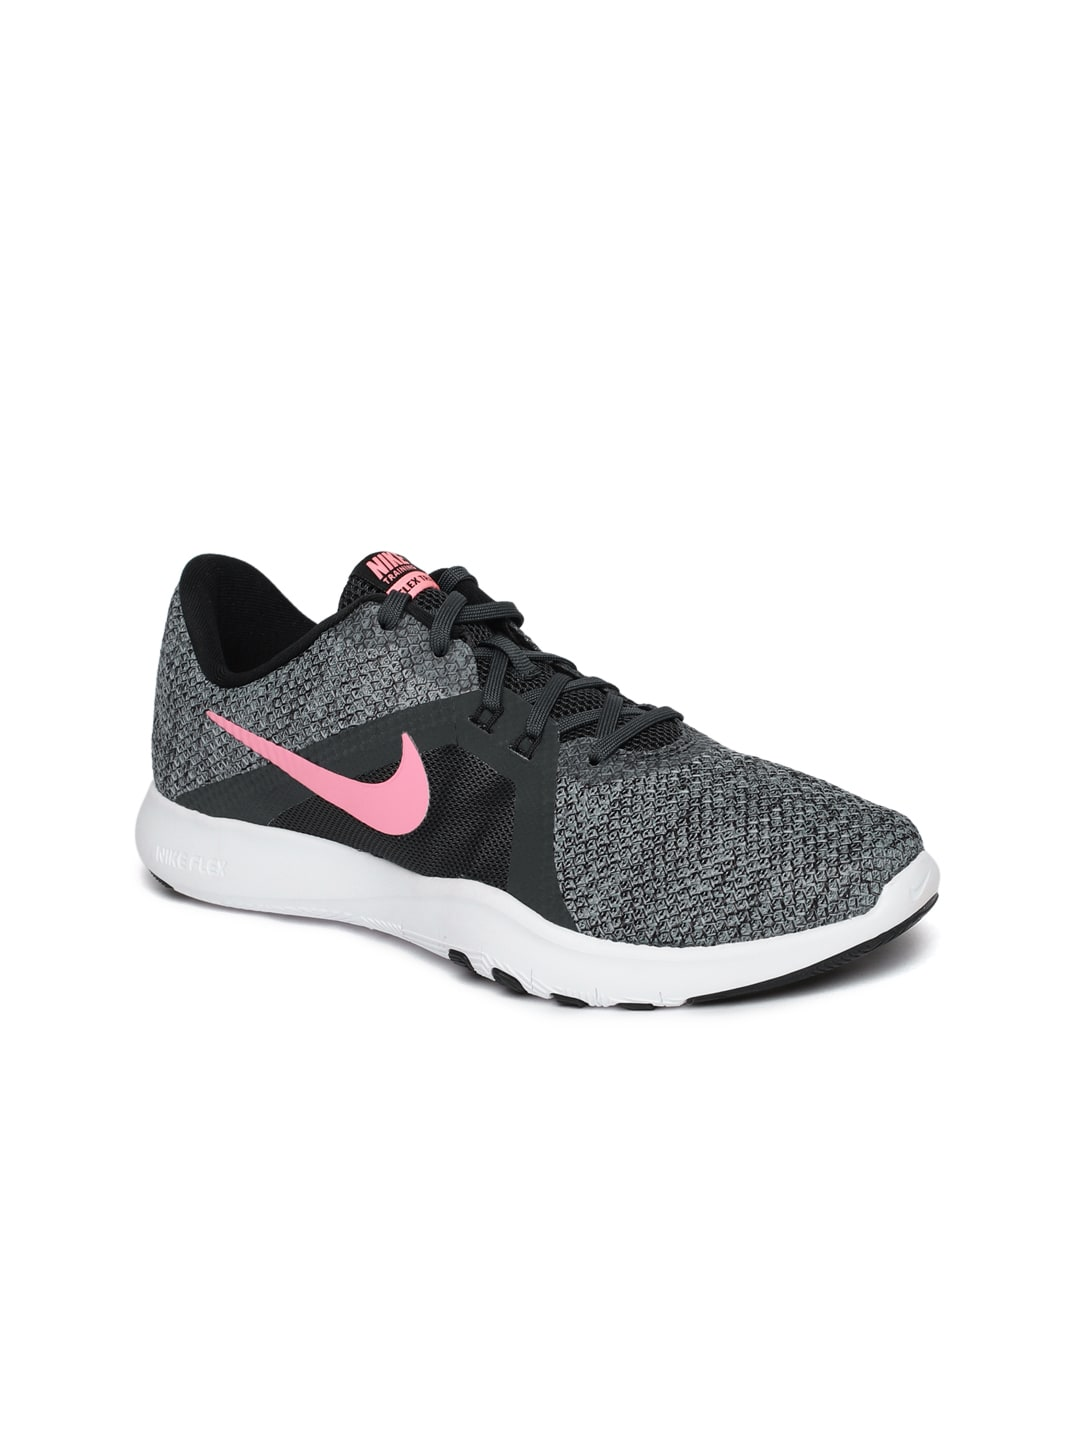 26f09f75bfe10 Nike Training Shoes - Buy Nike Training Shoes For Men   Women in India